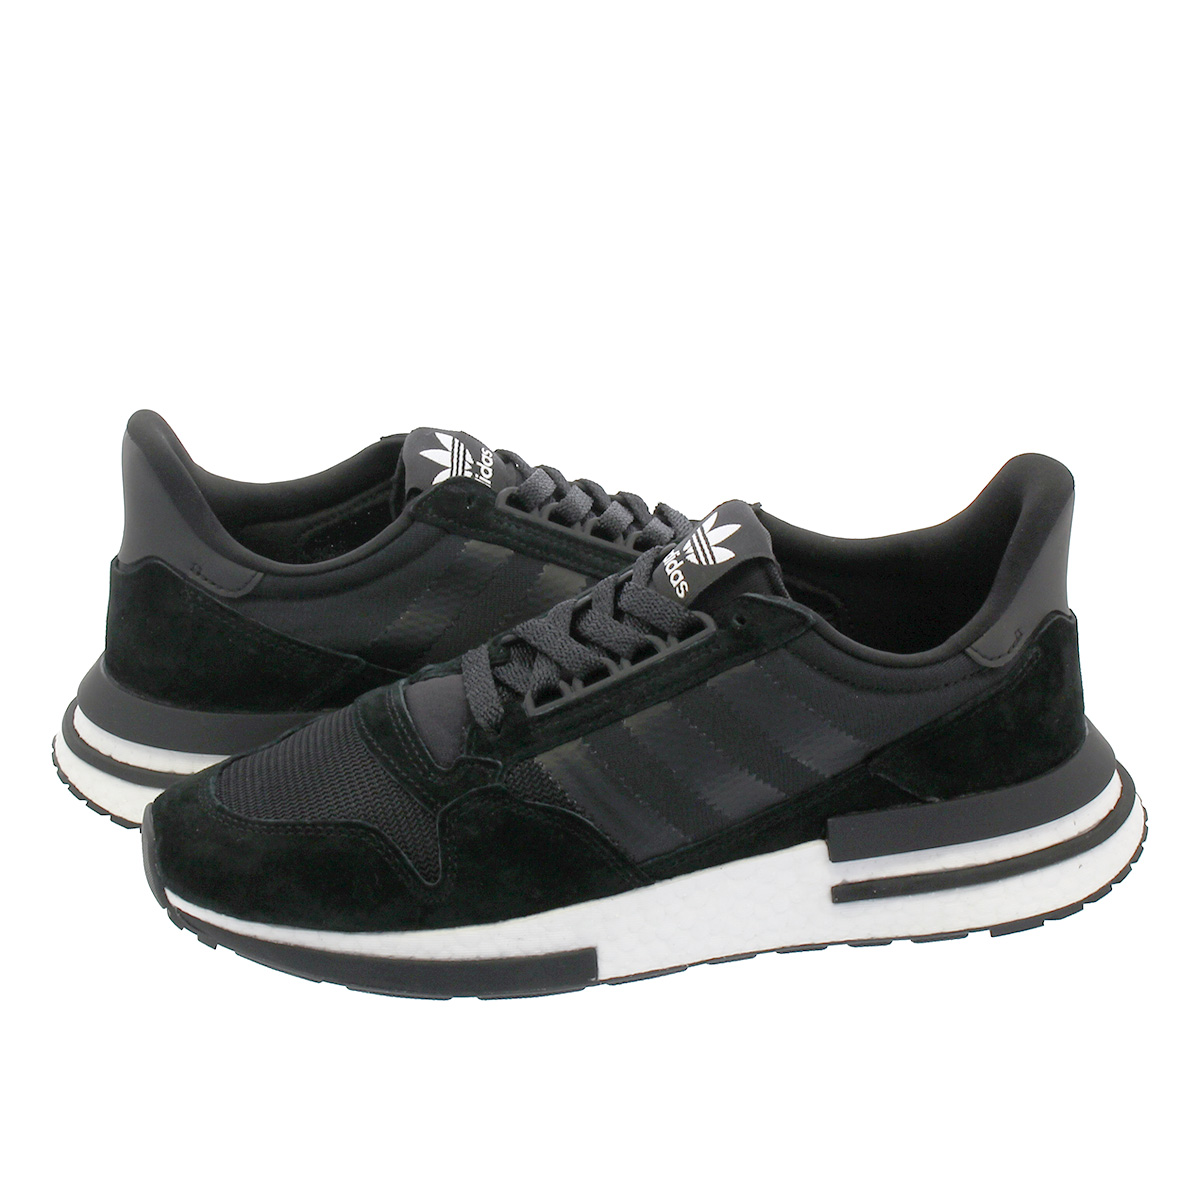 6a115792dcf LOWTEX BIG-SMALL SHOP  adidas ZX 500 RM Adidas ZX 500 RM CORE BLACK ...